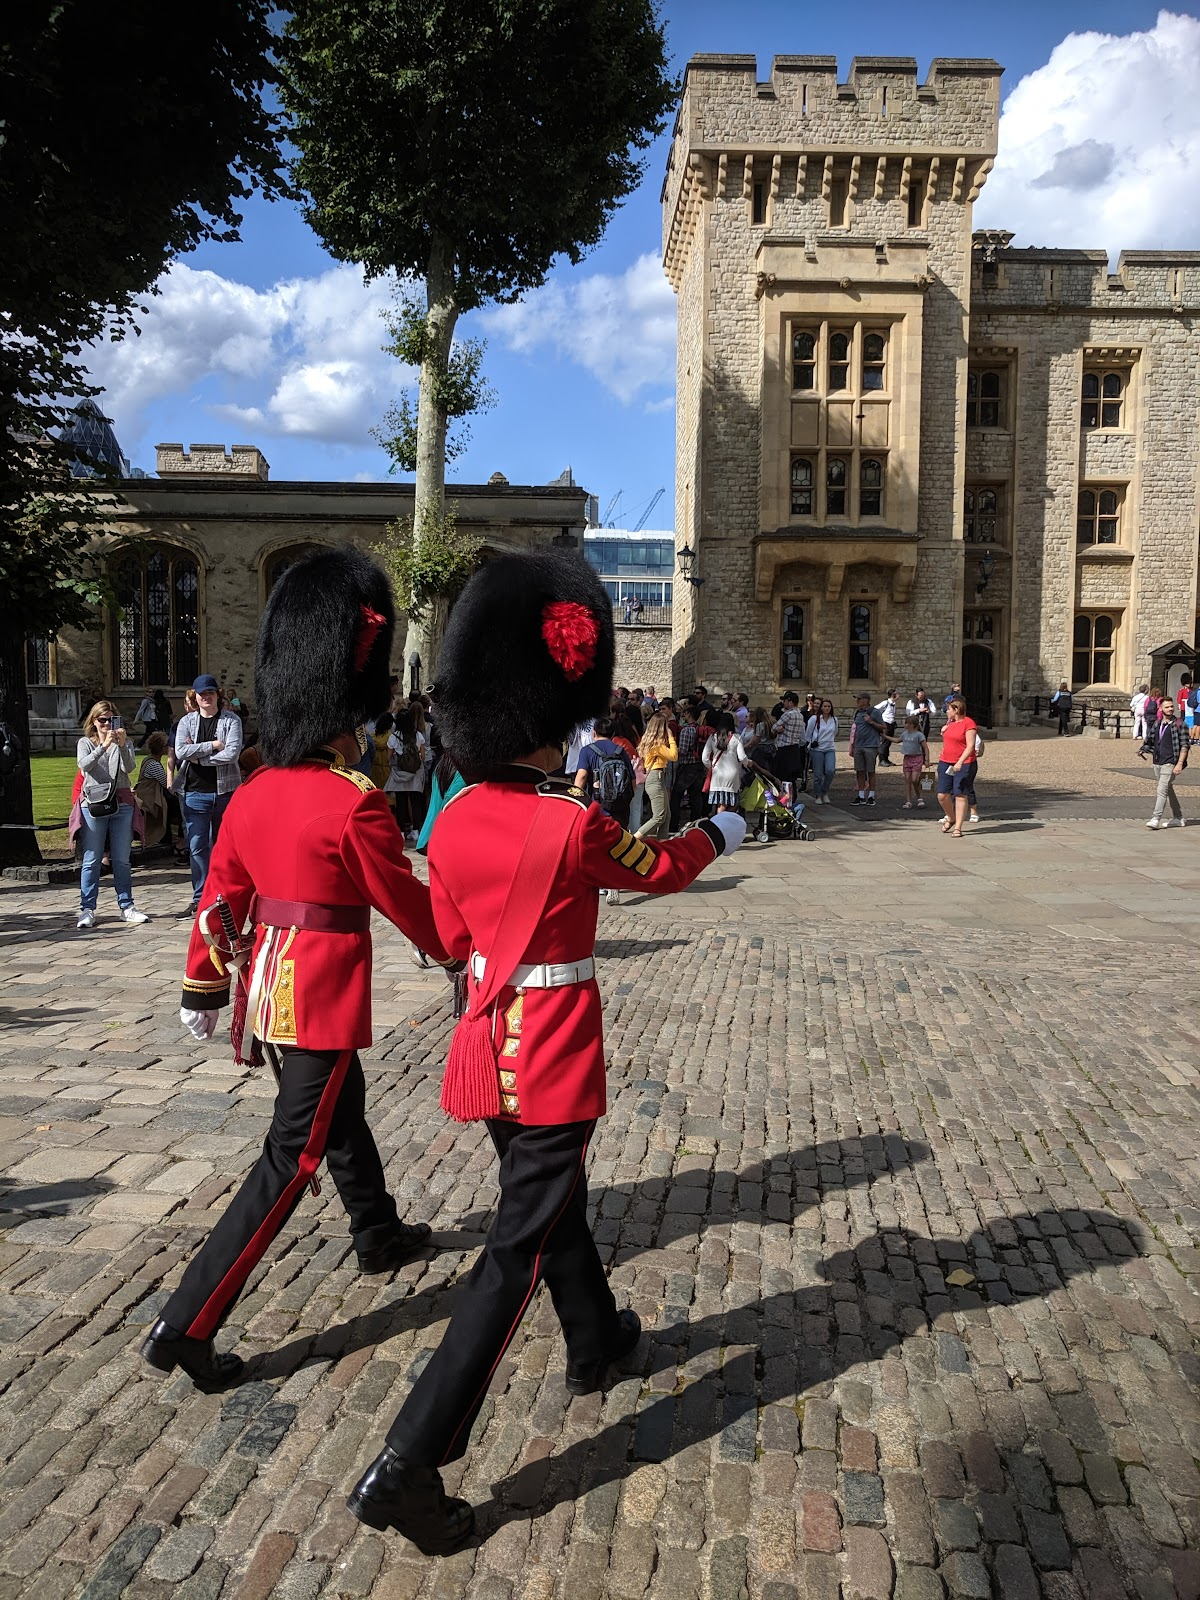 Meet Busbys and Beefeaters.